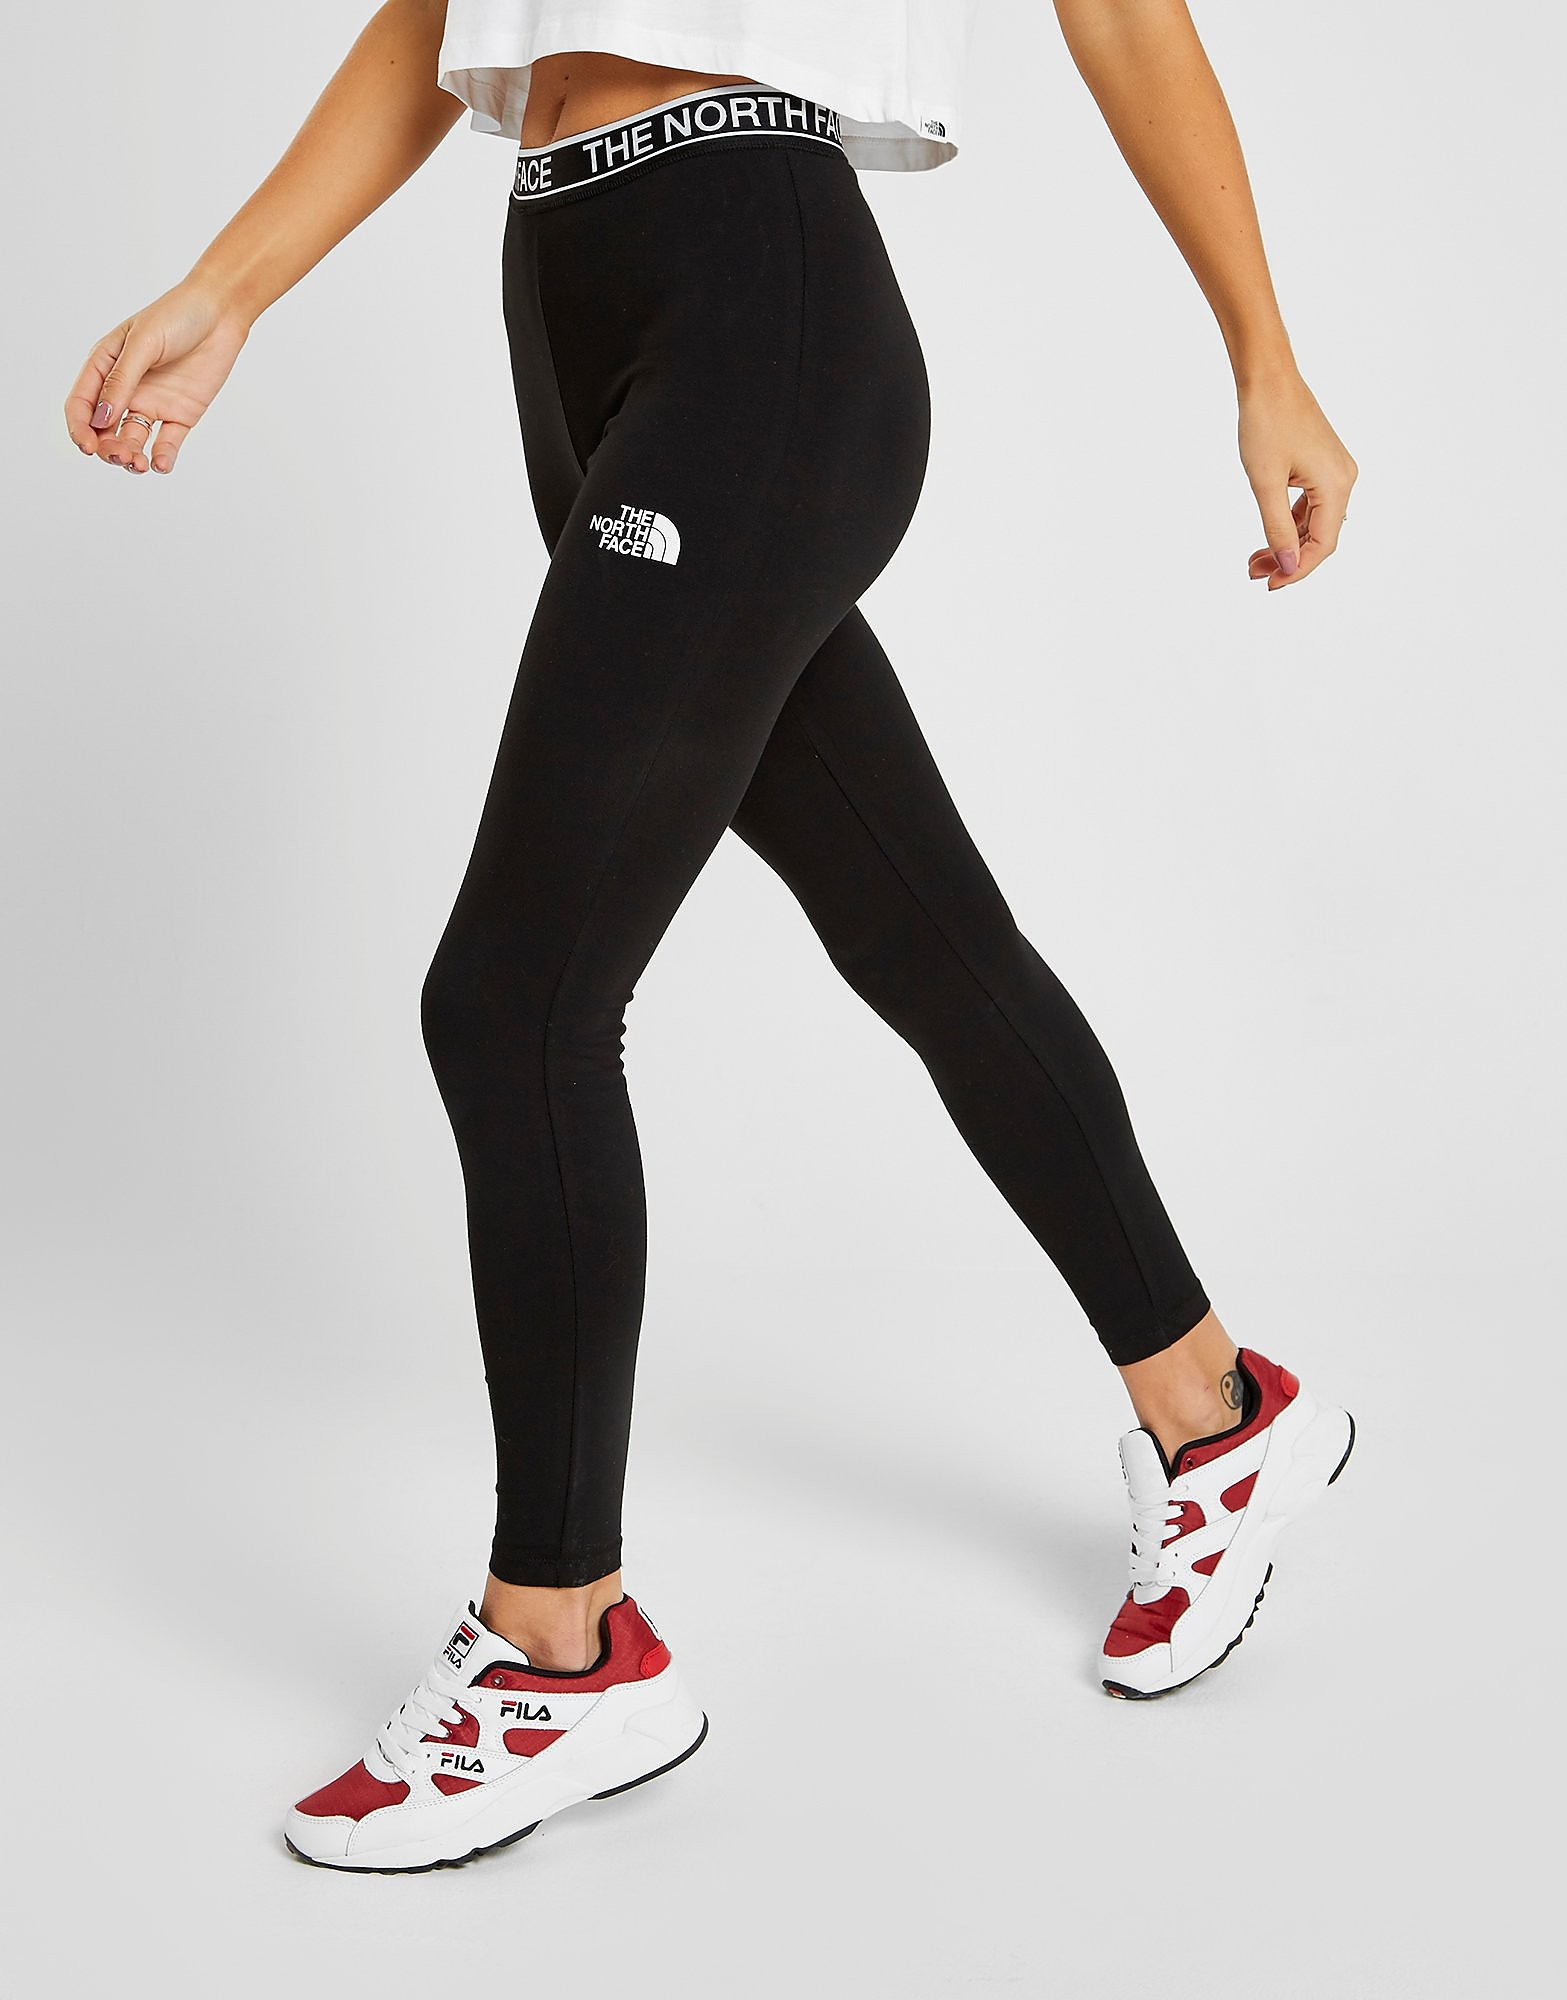 The North Face Leggings